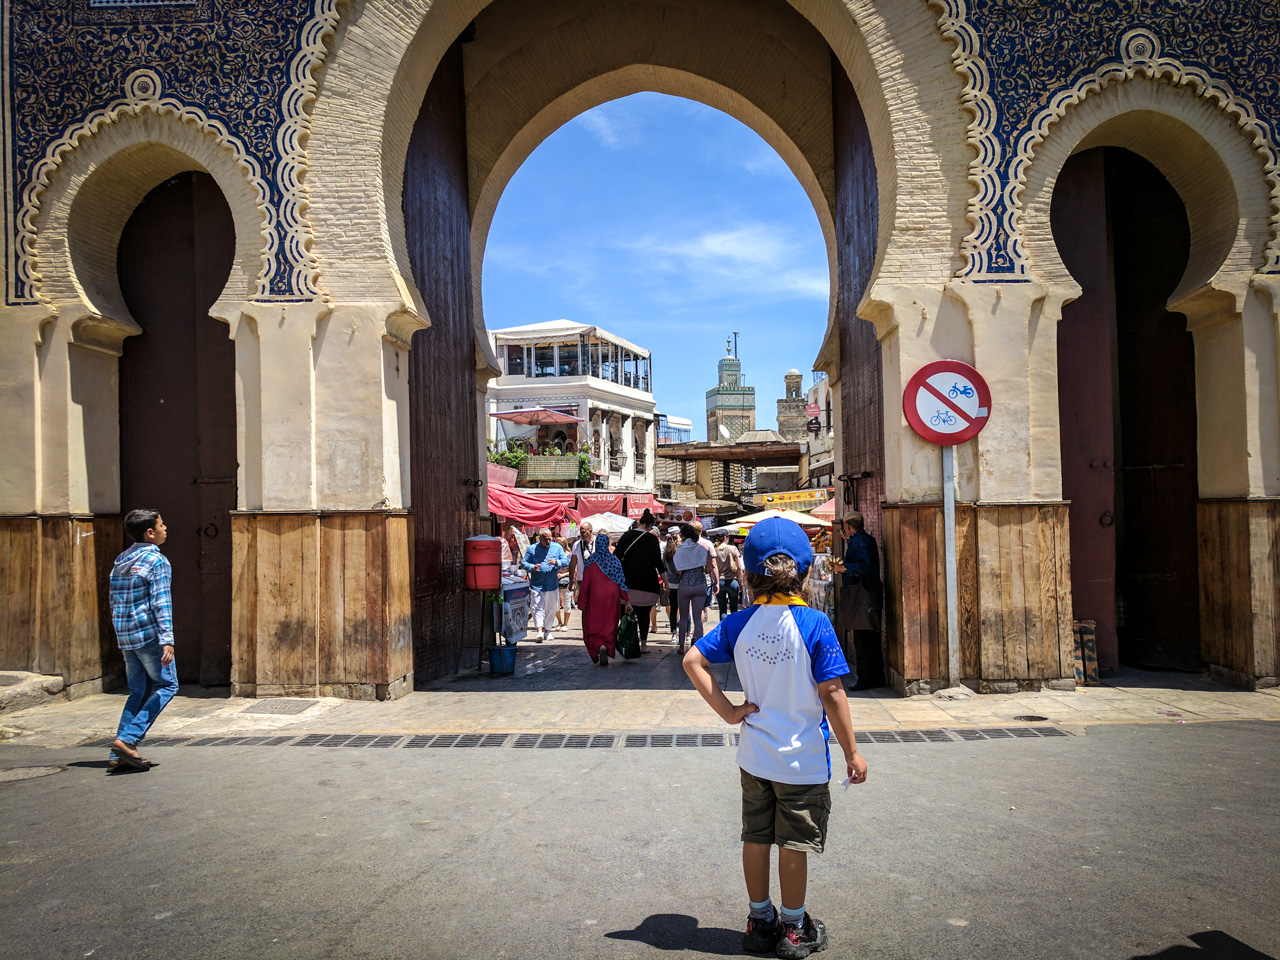 The Blue Gate of the Fes Medina